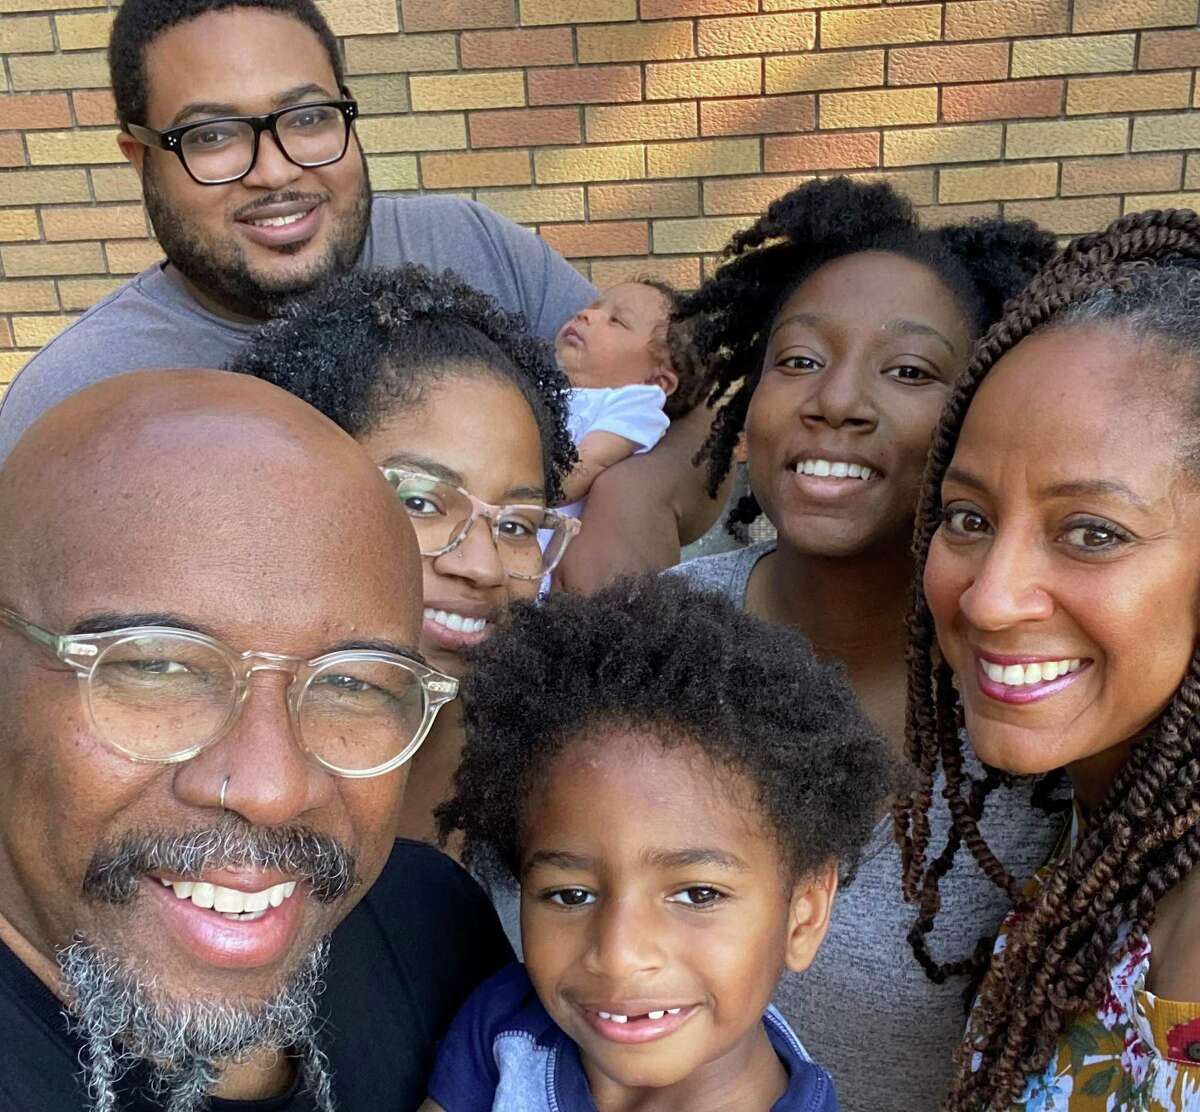 """St. John's Downtown pastors Juanita Campbell Rasmus, right, and husband Rudy are surrounded by their family. In her new book, """"Learning to Be: Finding Your Center After the Bottom Falls Out"""" (InterVarsity Press, $21.99), Rasmus chronicles her own mental """"crash"""" in 1999."""